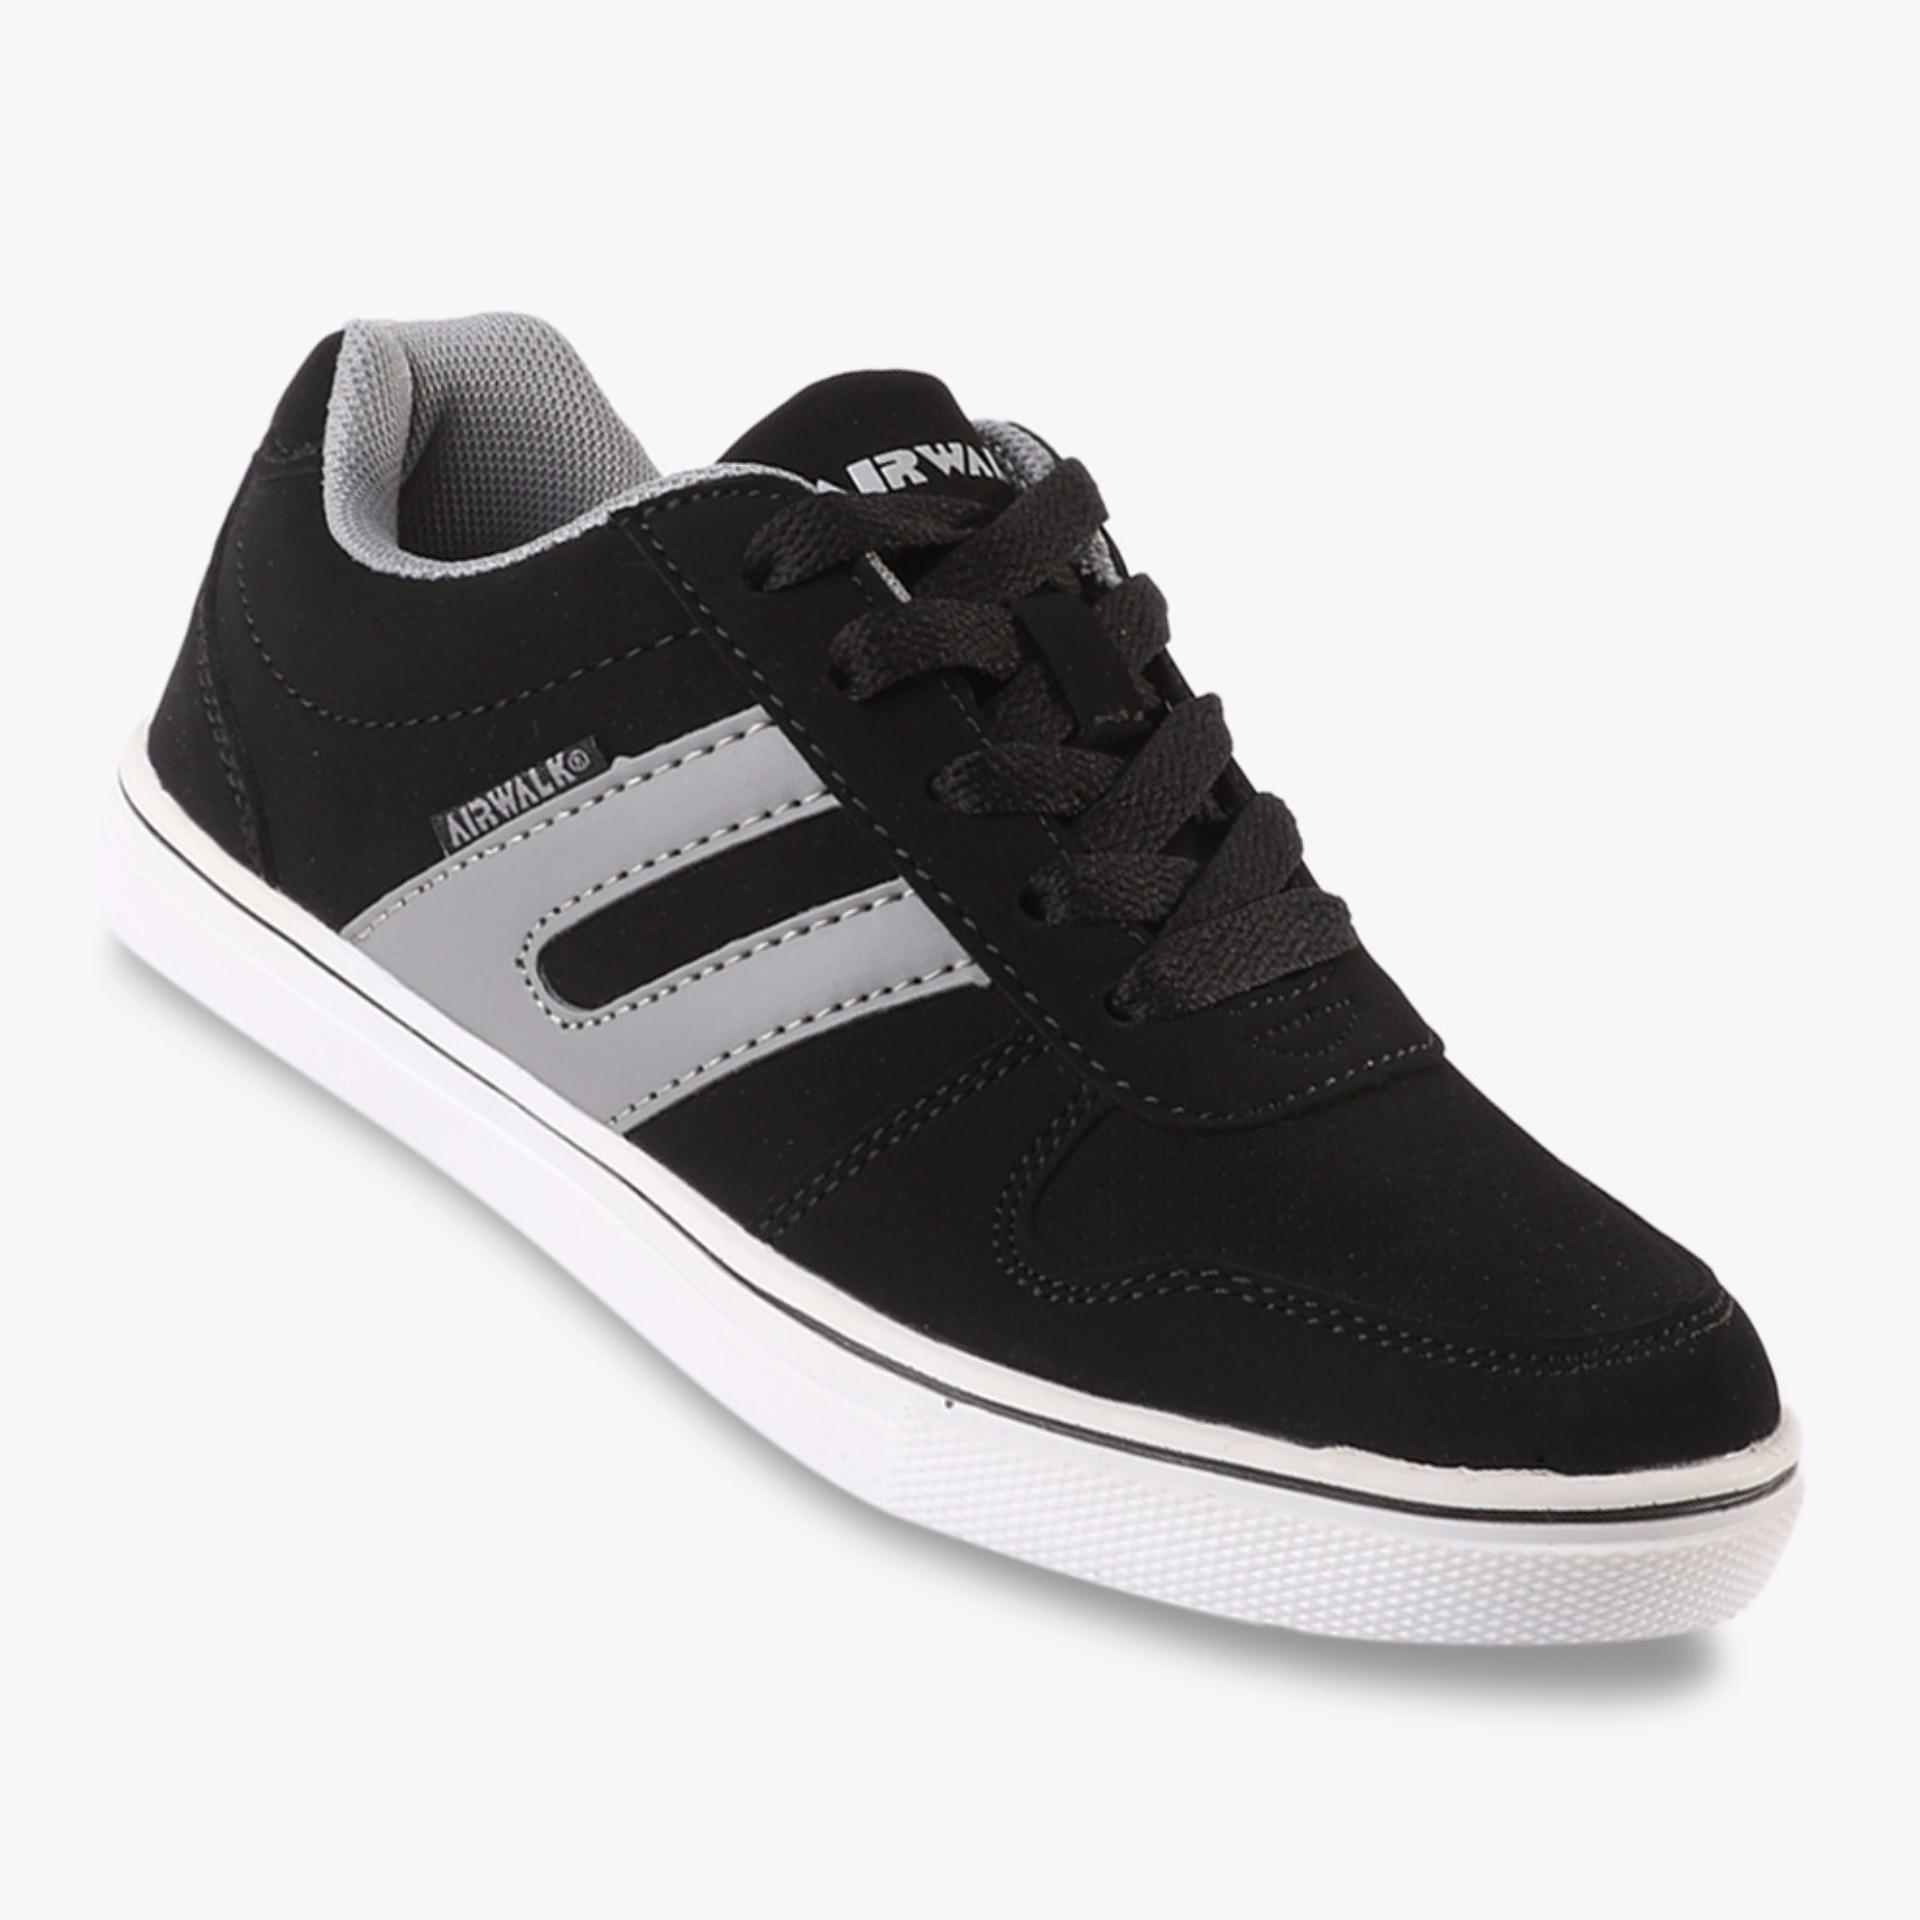 Harga Airwalk Jaky Jr Boys Sneakers Shoes Hitam Airwalk Terbaik